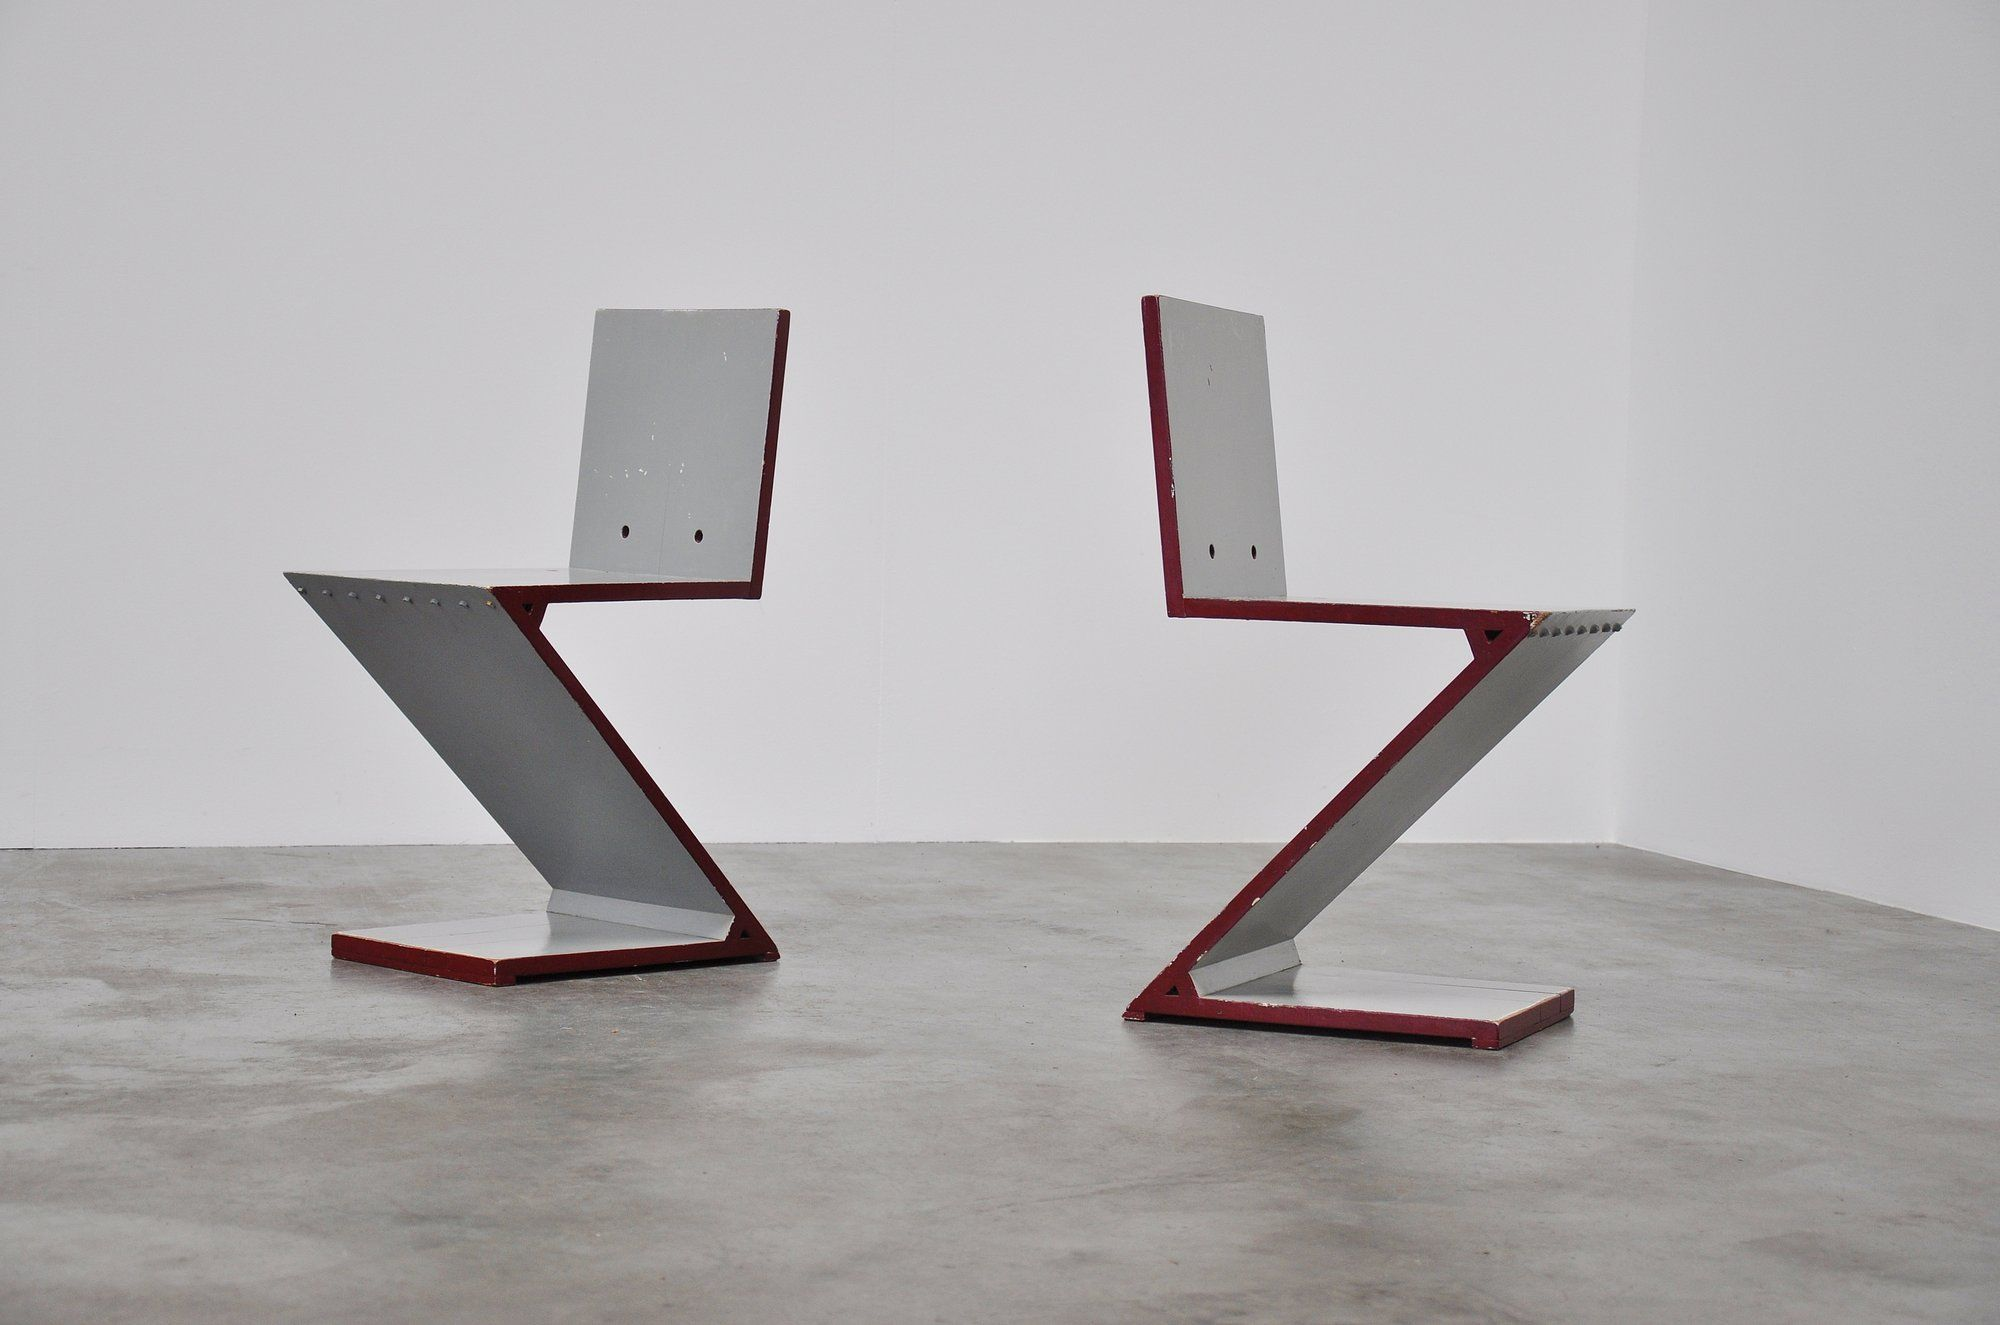 Gerrit rietveld chair for sale - Gerrit Rietveld Zig Zag Chair Pair G A V D Groenekan 1961